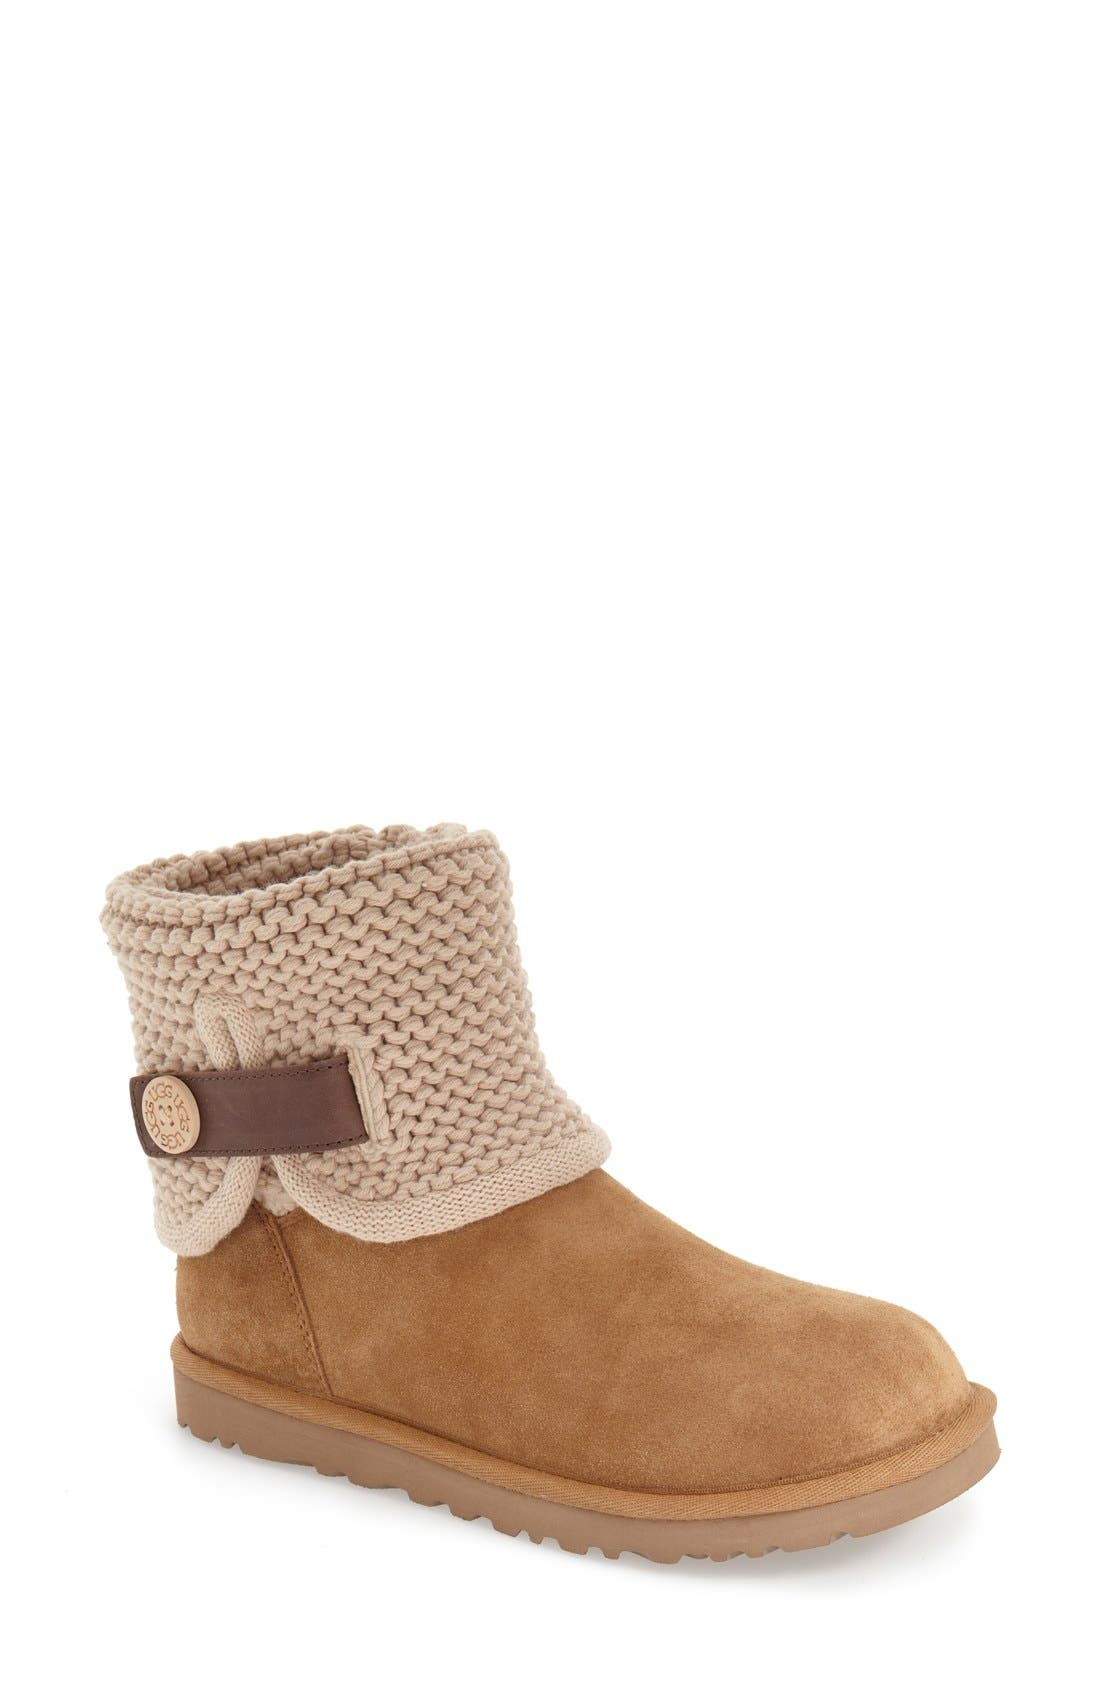 Shaina Knit Cuff Bootie,                         Main,                         color,